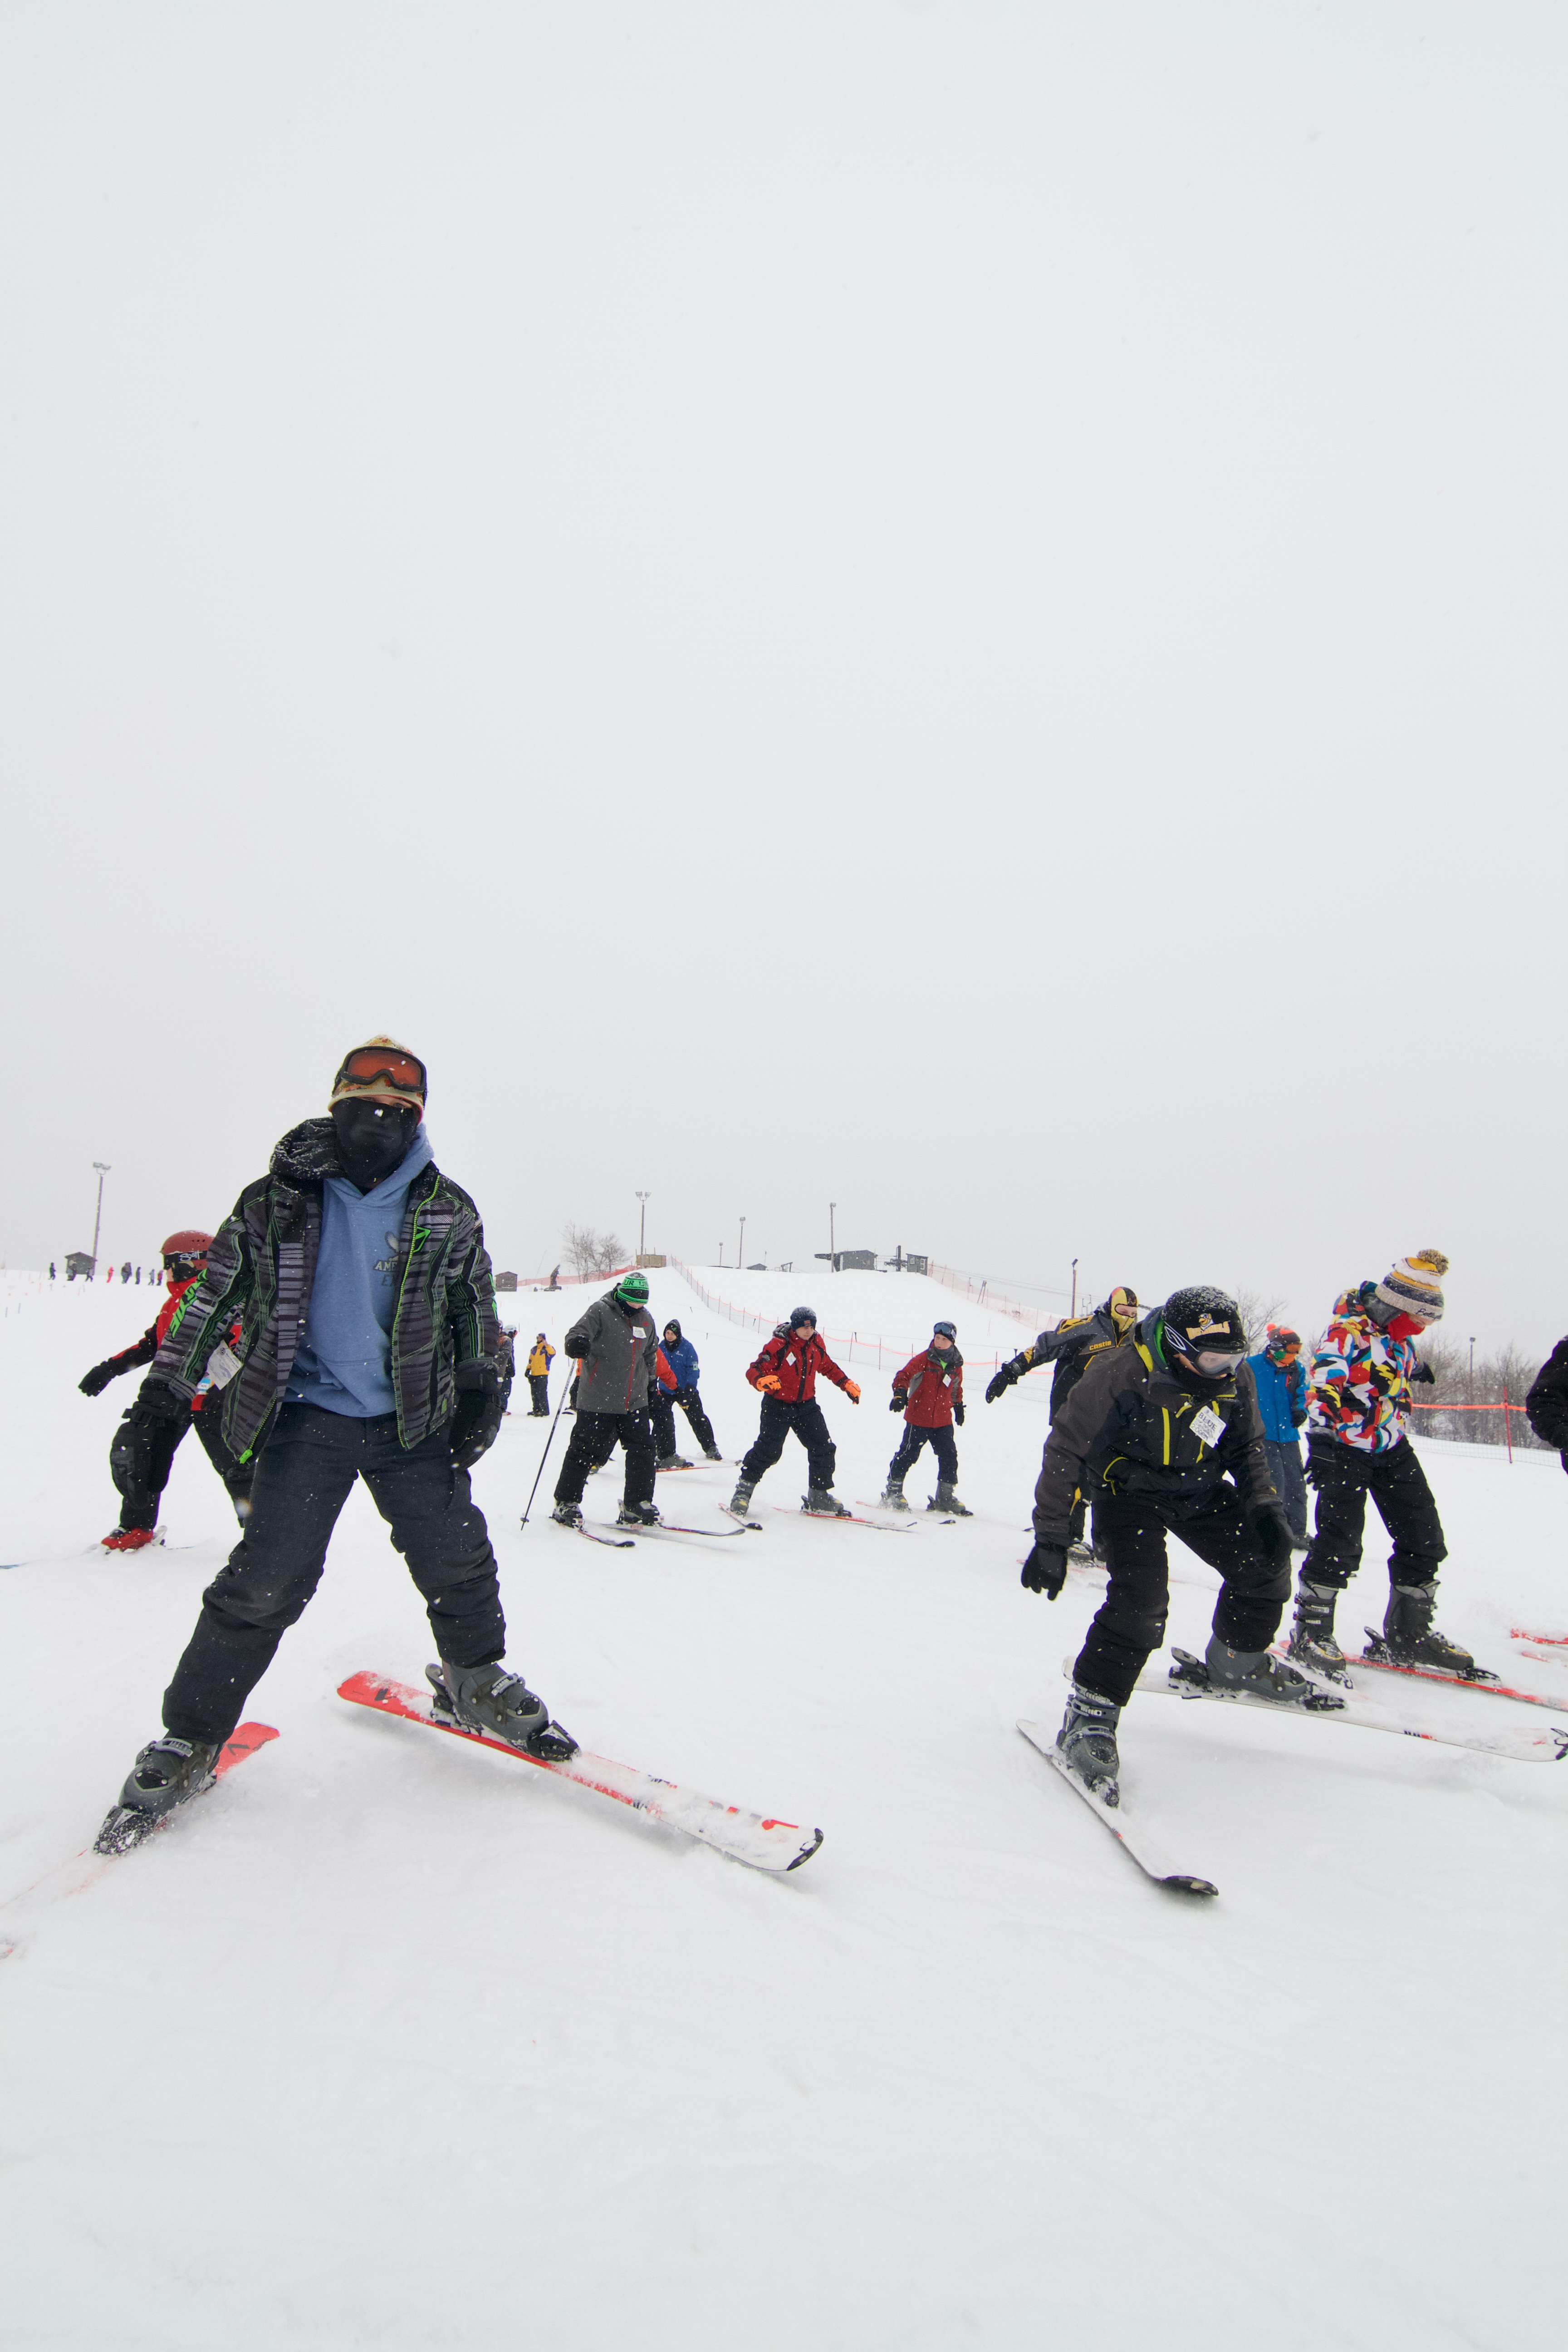 Group of kids learning to ski